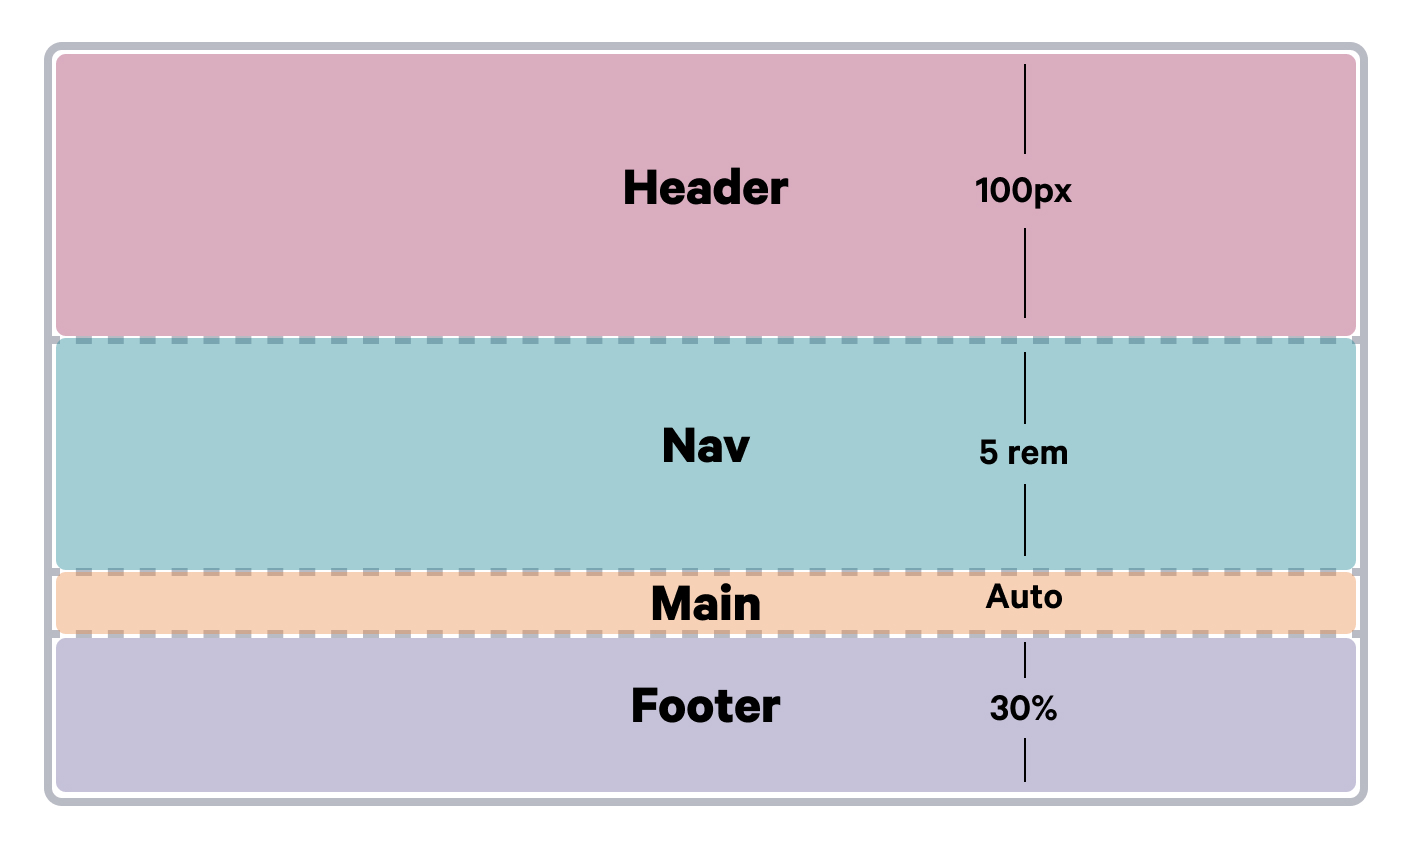 A diagram showing the placement of html elements using the grid-template-rows property.